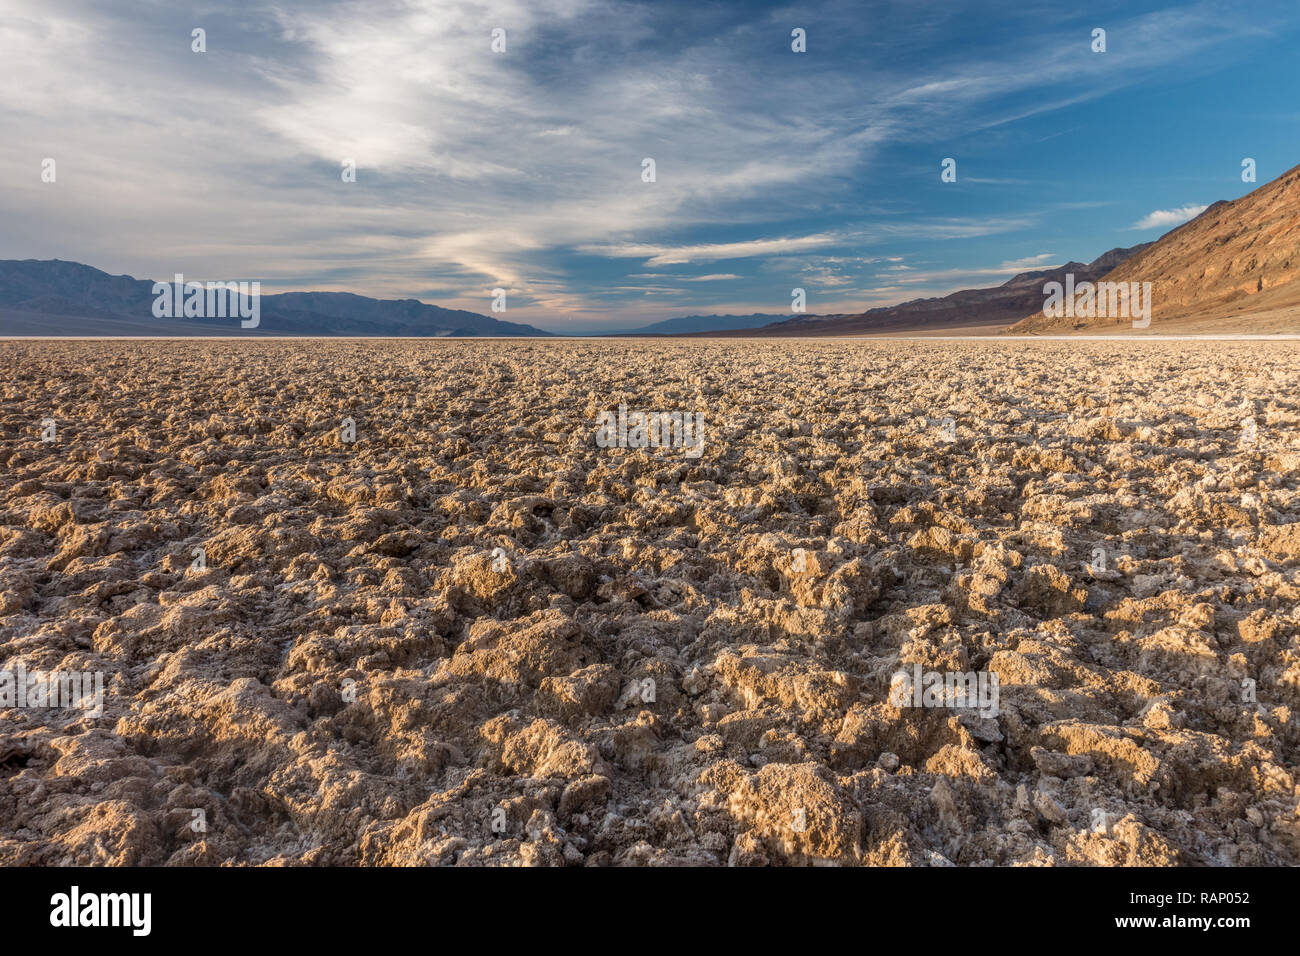 Clumps of Salt and Mud Creating a Forbidding Landscape, Badwater Basin, Death Valley National Park Stock Photo